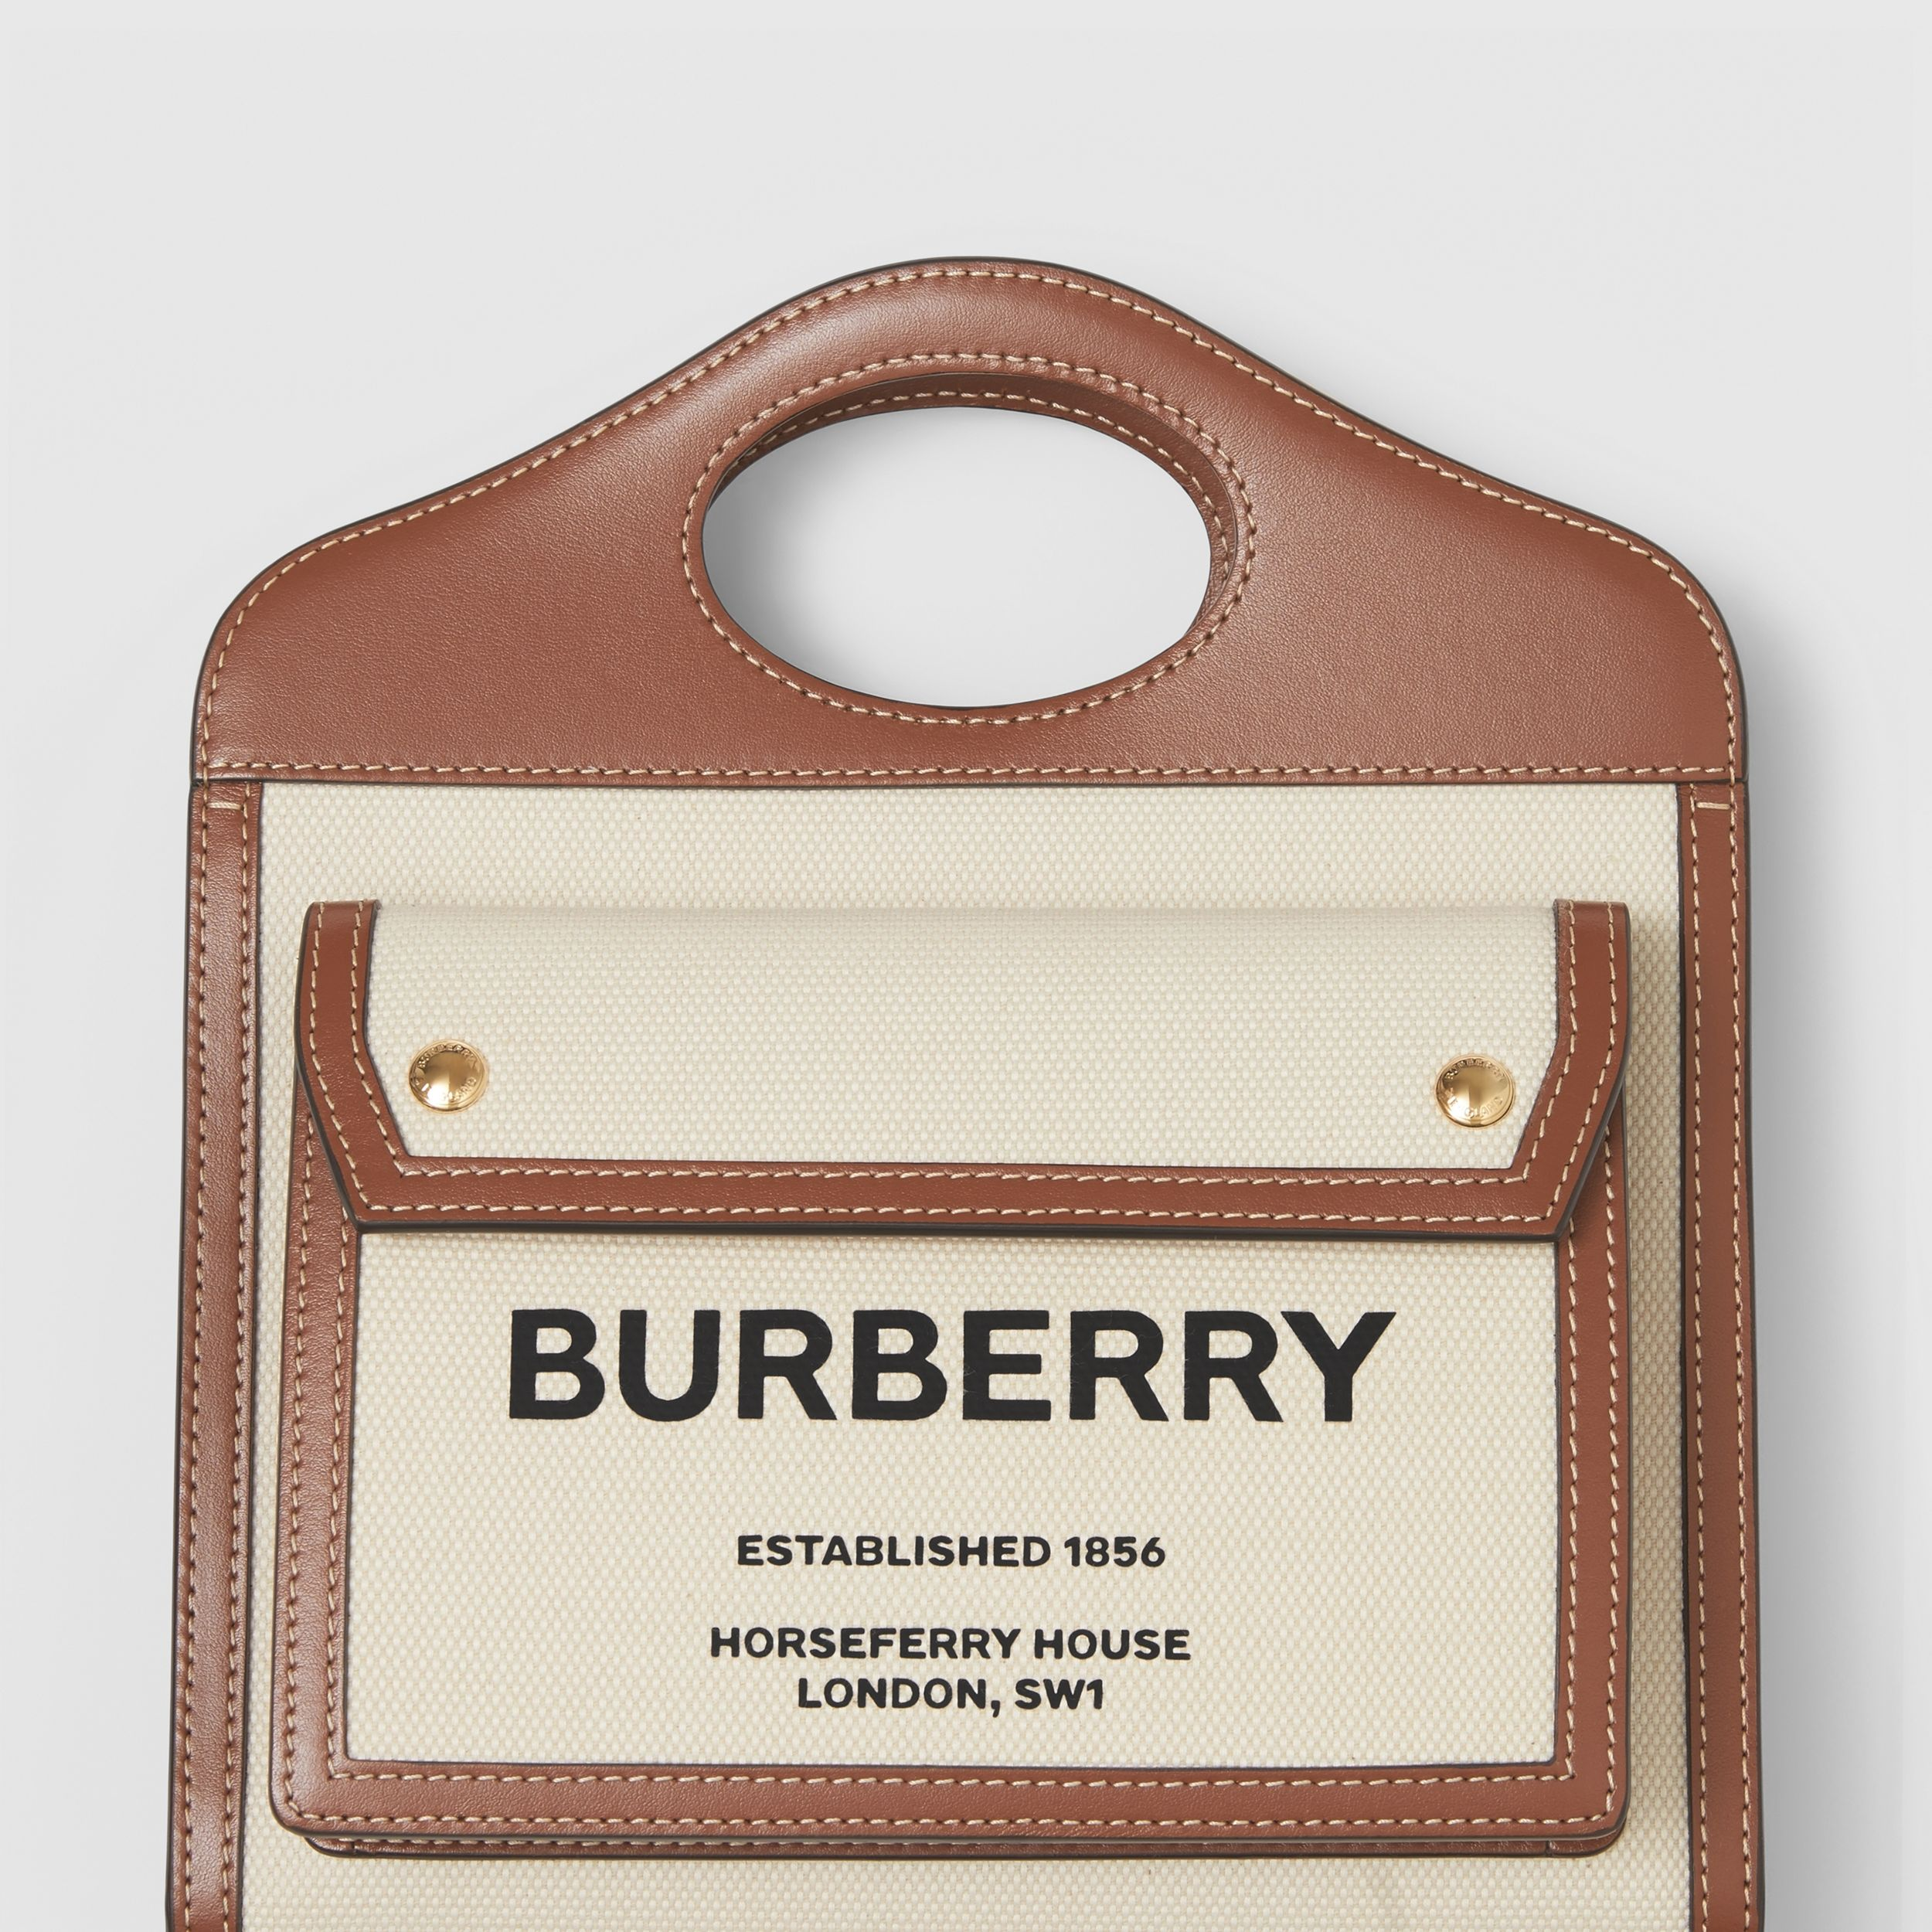 Mini Two-tone Canvas and Leather Pocket Bag in Natural/malt Brown - Women | Burberry - 2